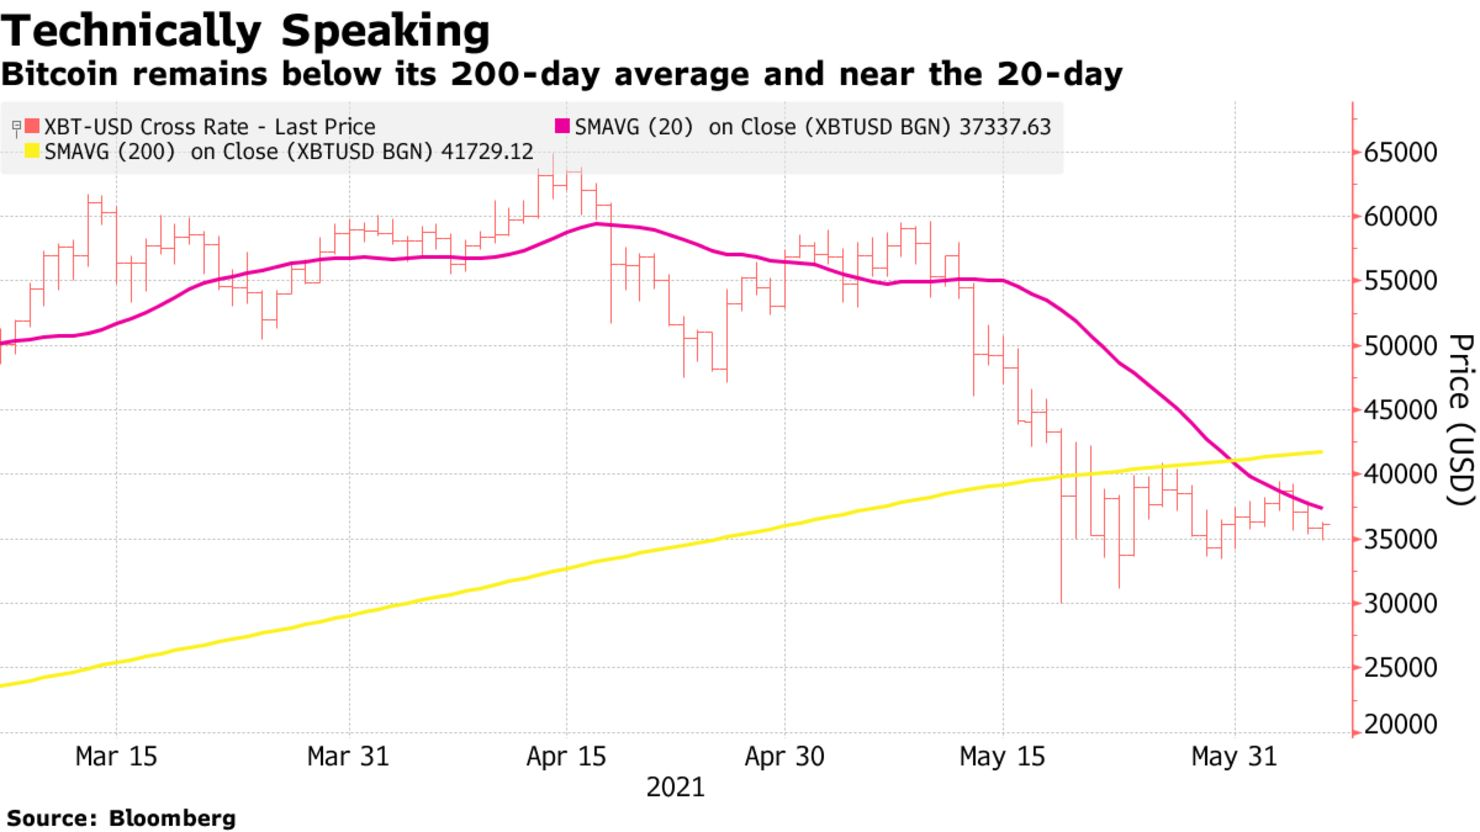 Bitcoin remains below its 200-day average and near the 20-day